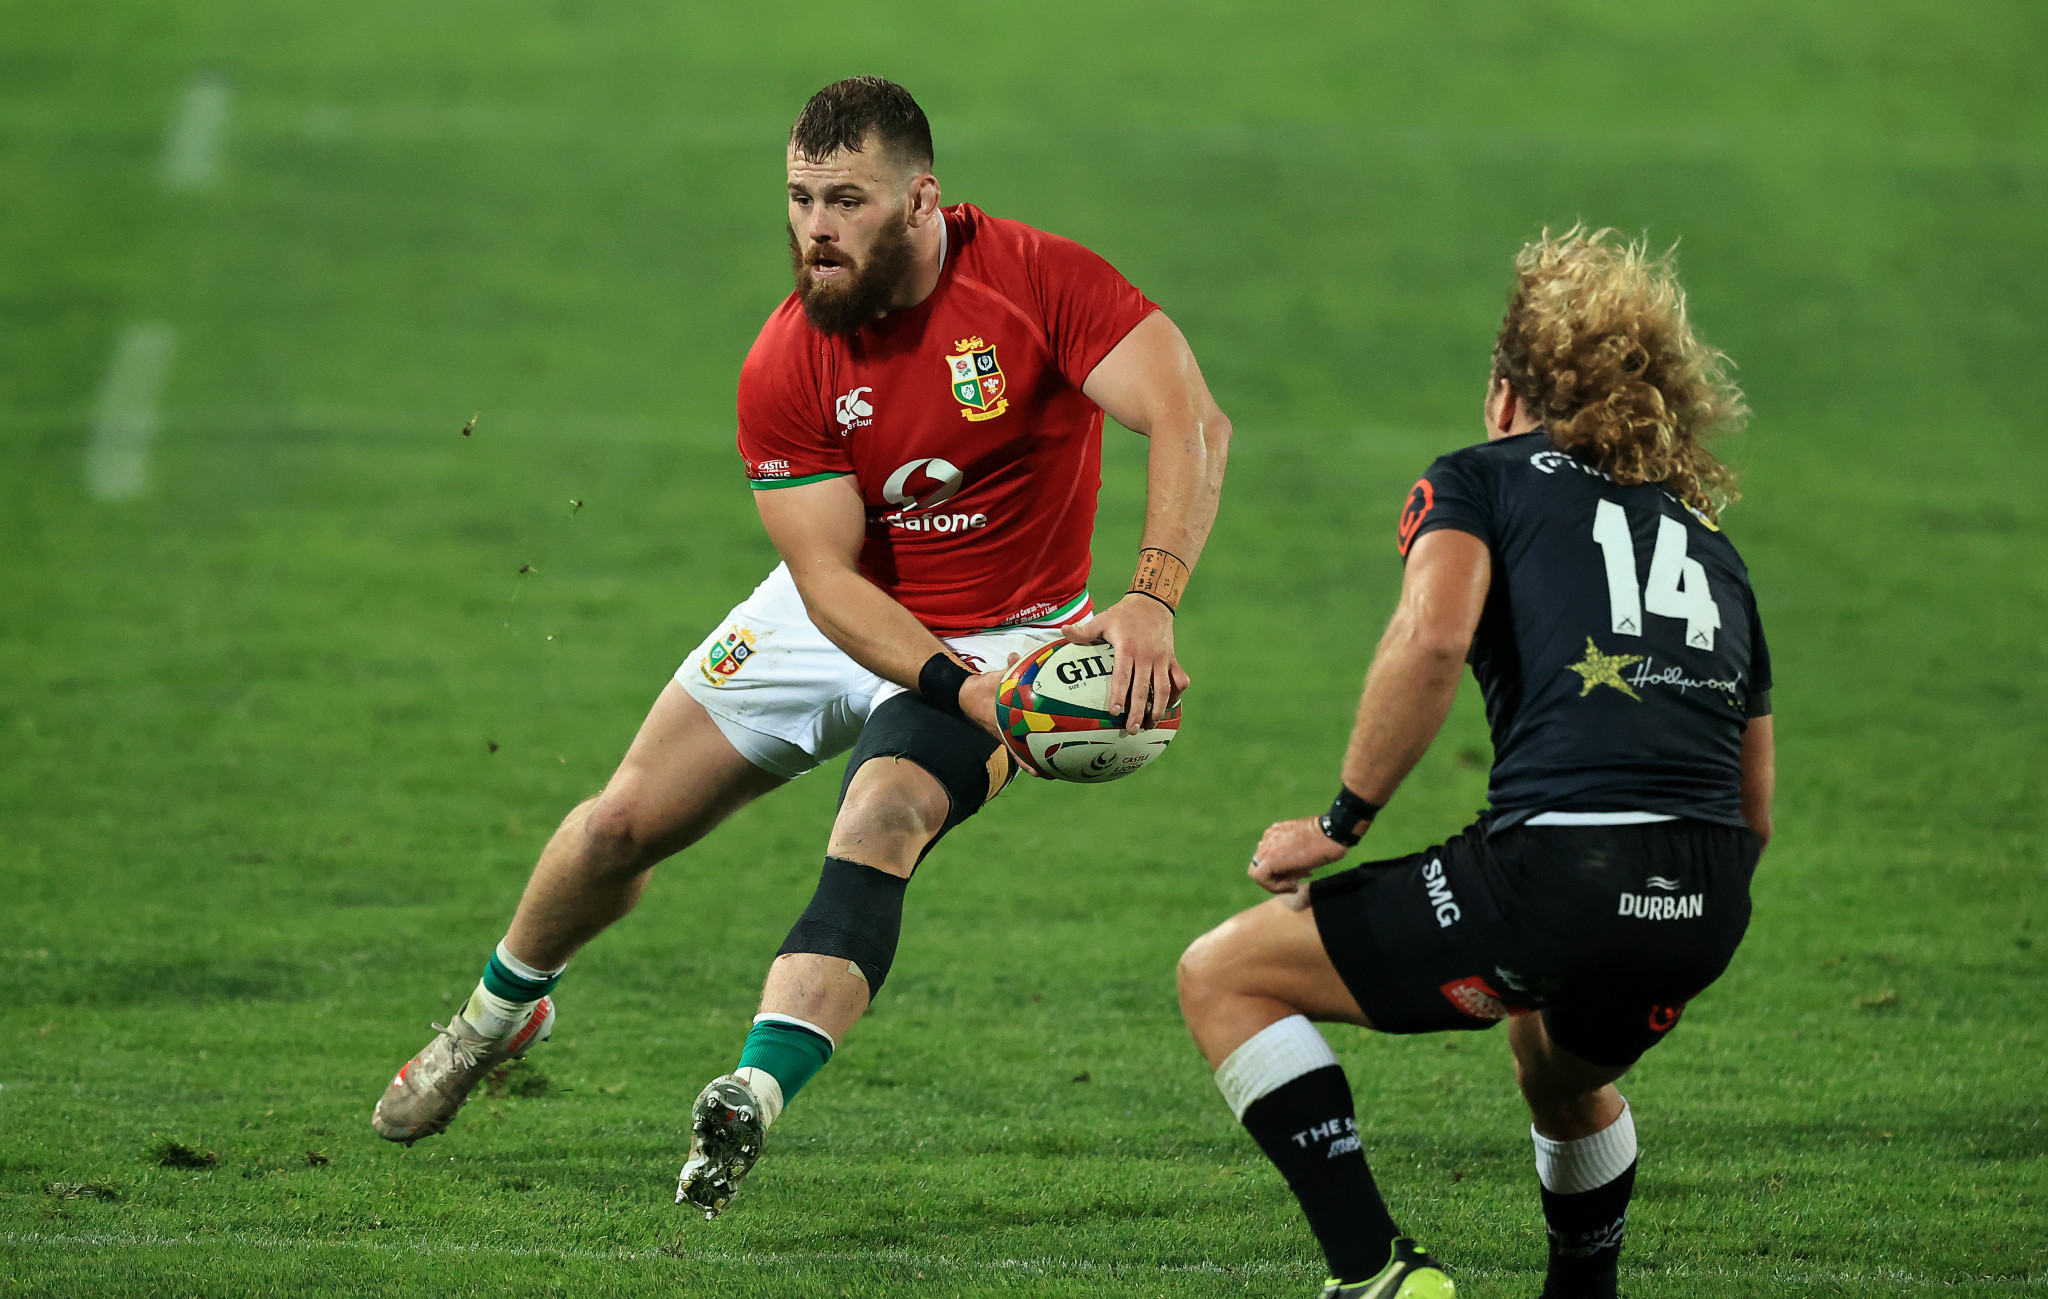 Progressive Rugby criticised the selection of Luke Cowan-Dickie for the British & Irish Lions ©Getty Images